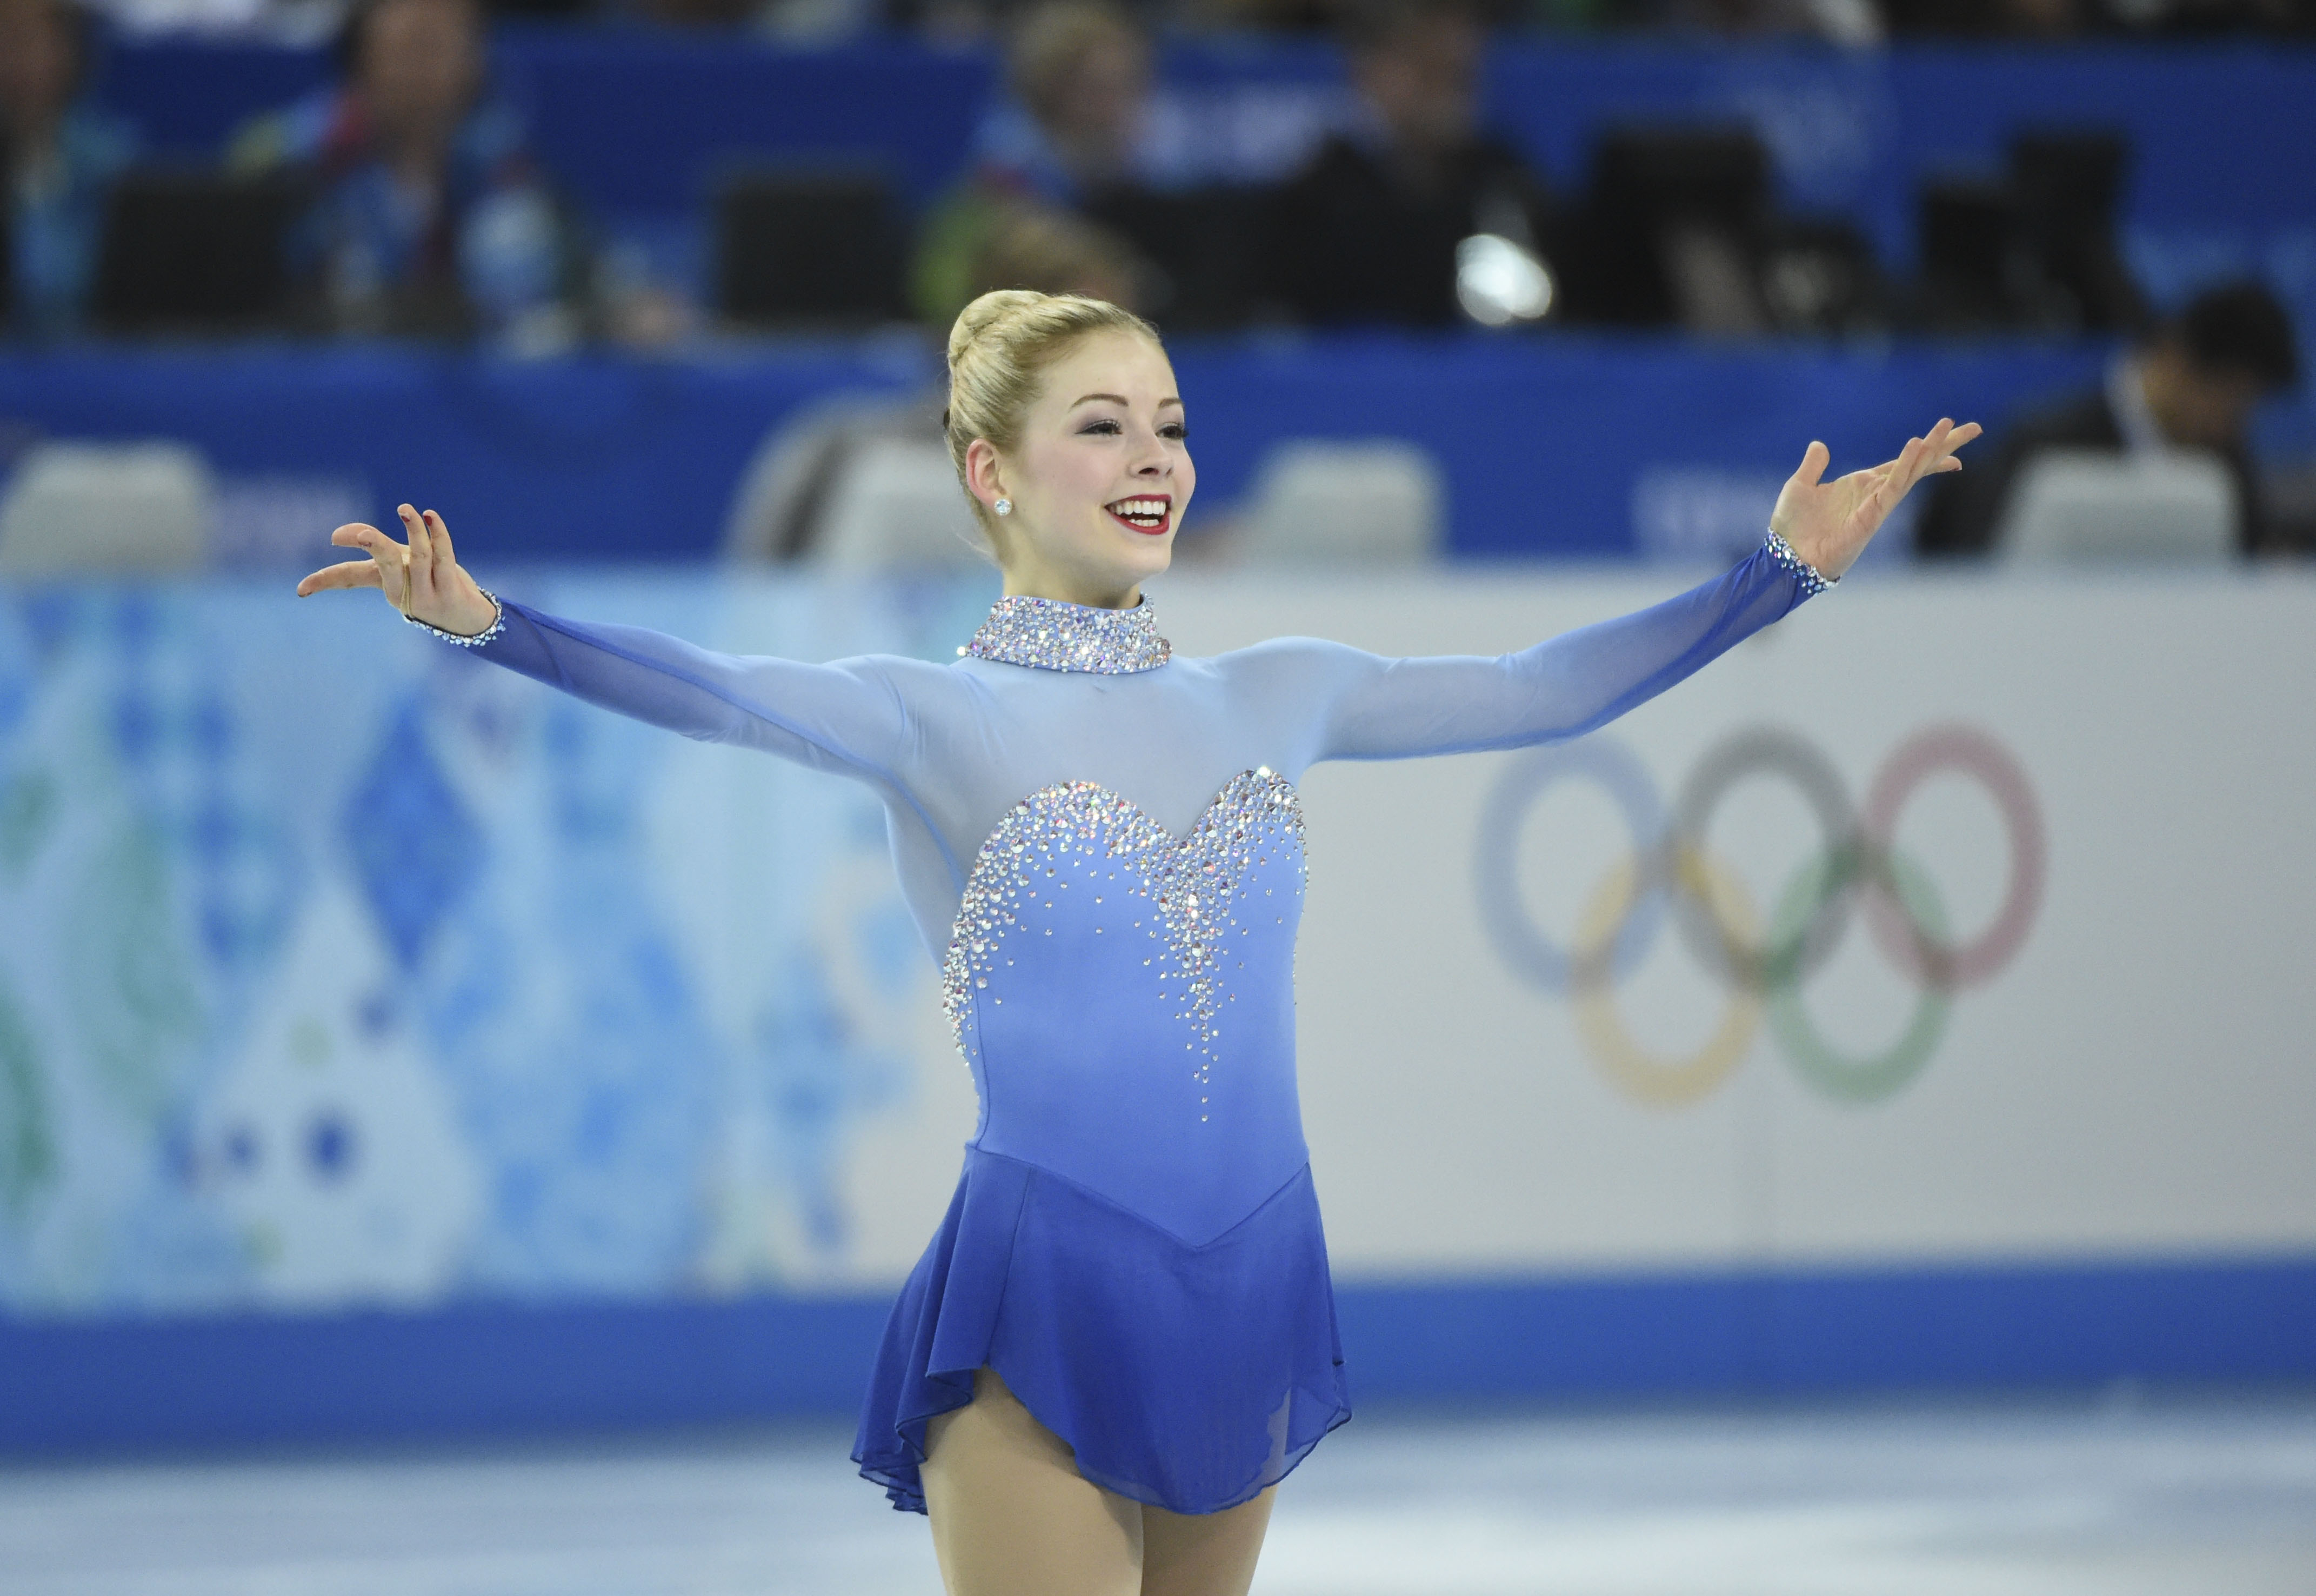 Nikon D4S at Sochi 2014, sample images taken by D4S | Camera News ...